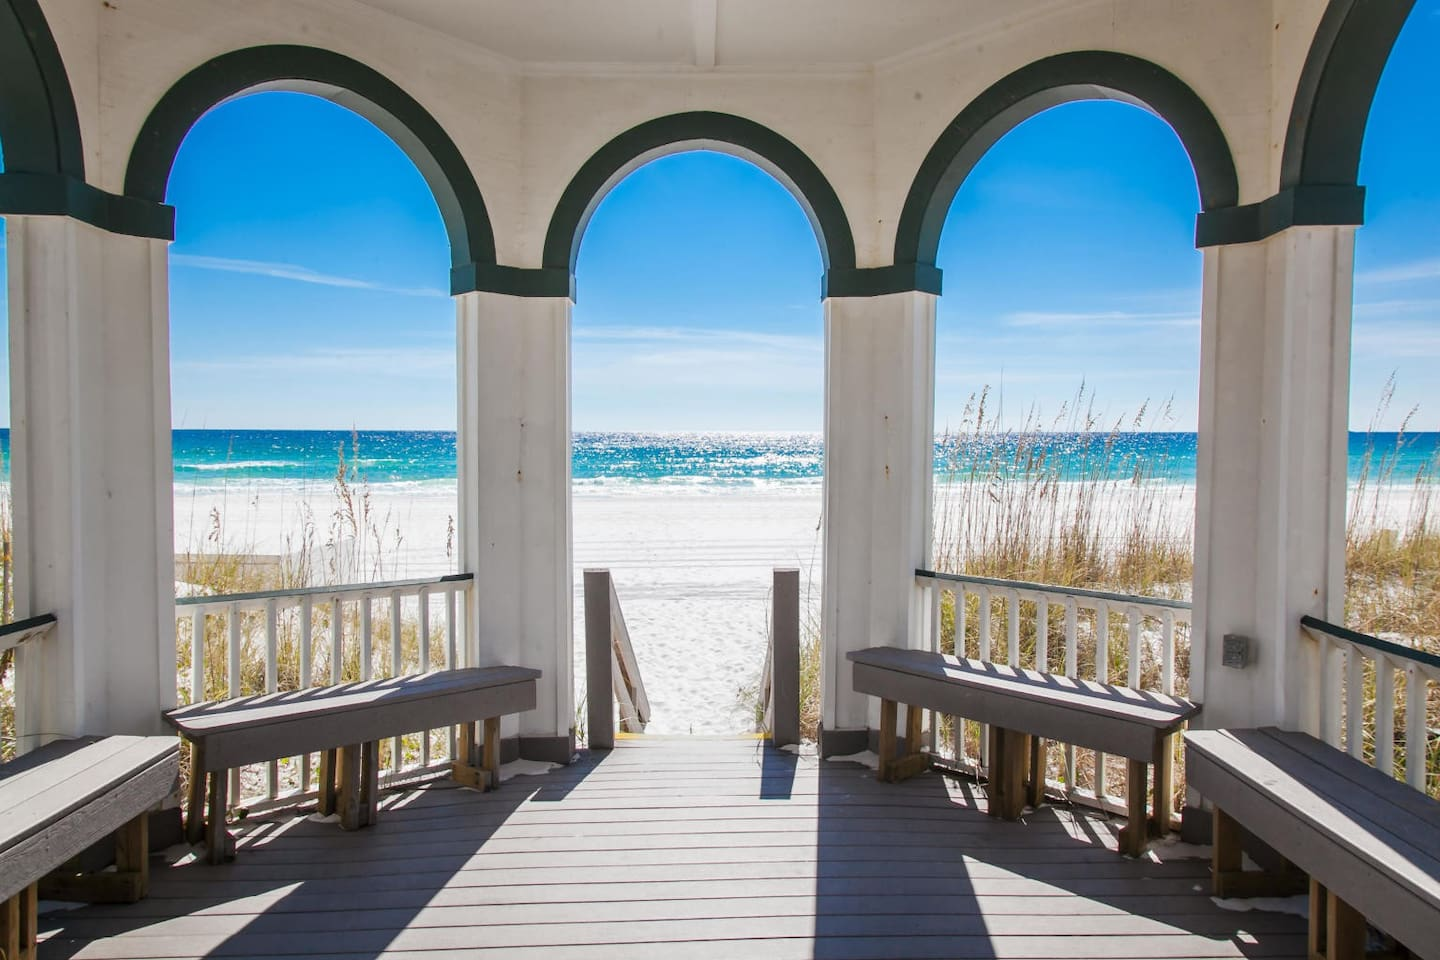 Mojo's community, private beach entrance.  No parking problems.  No crowds.  Just beautiful white sand beach.